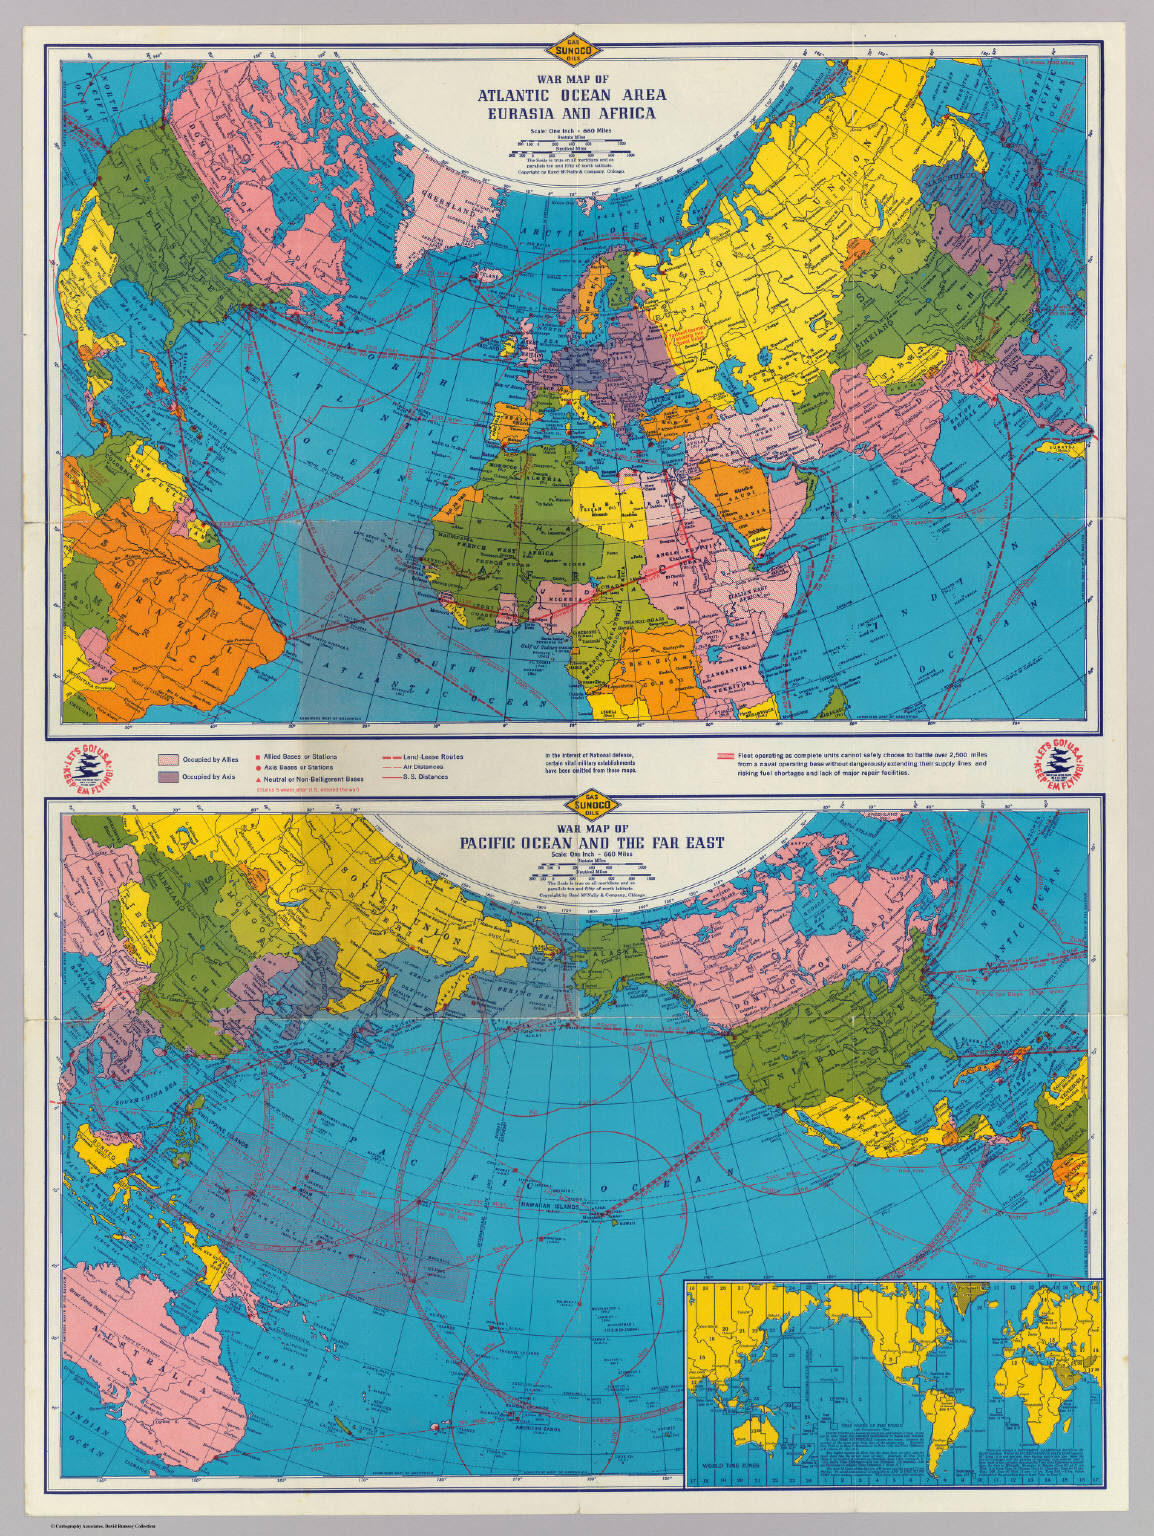 War map Atlantic, Eurasia, Africa, Pacific Ocean. / Rand ...